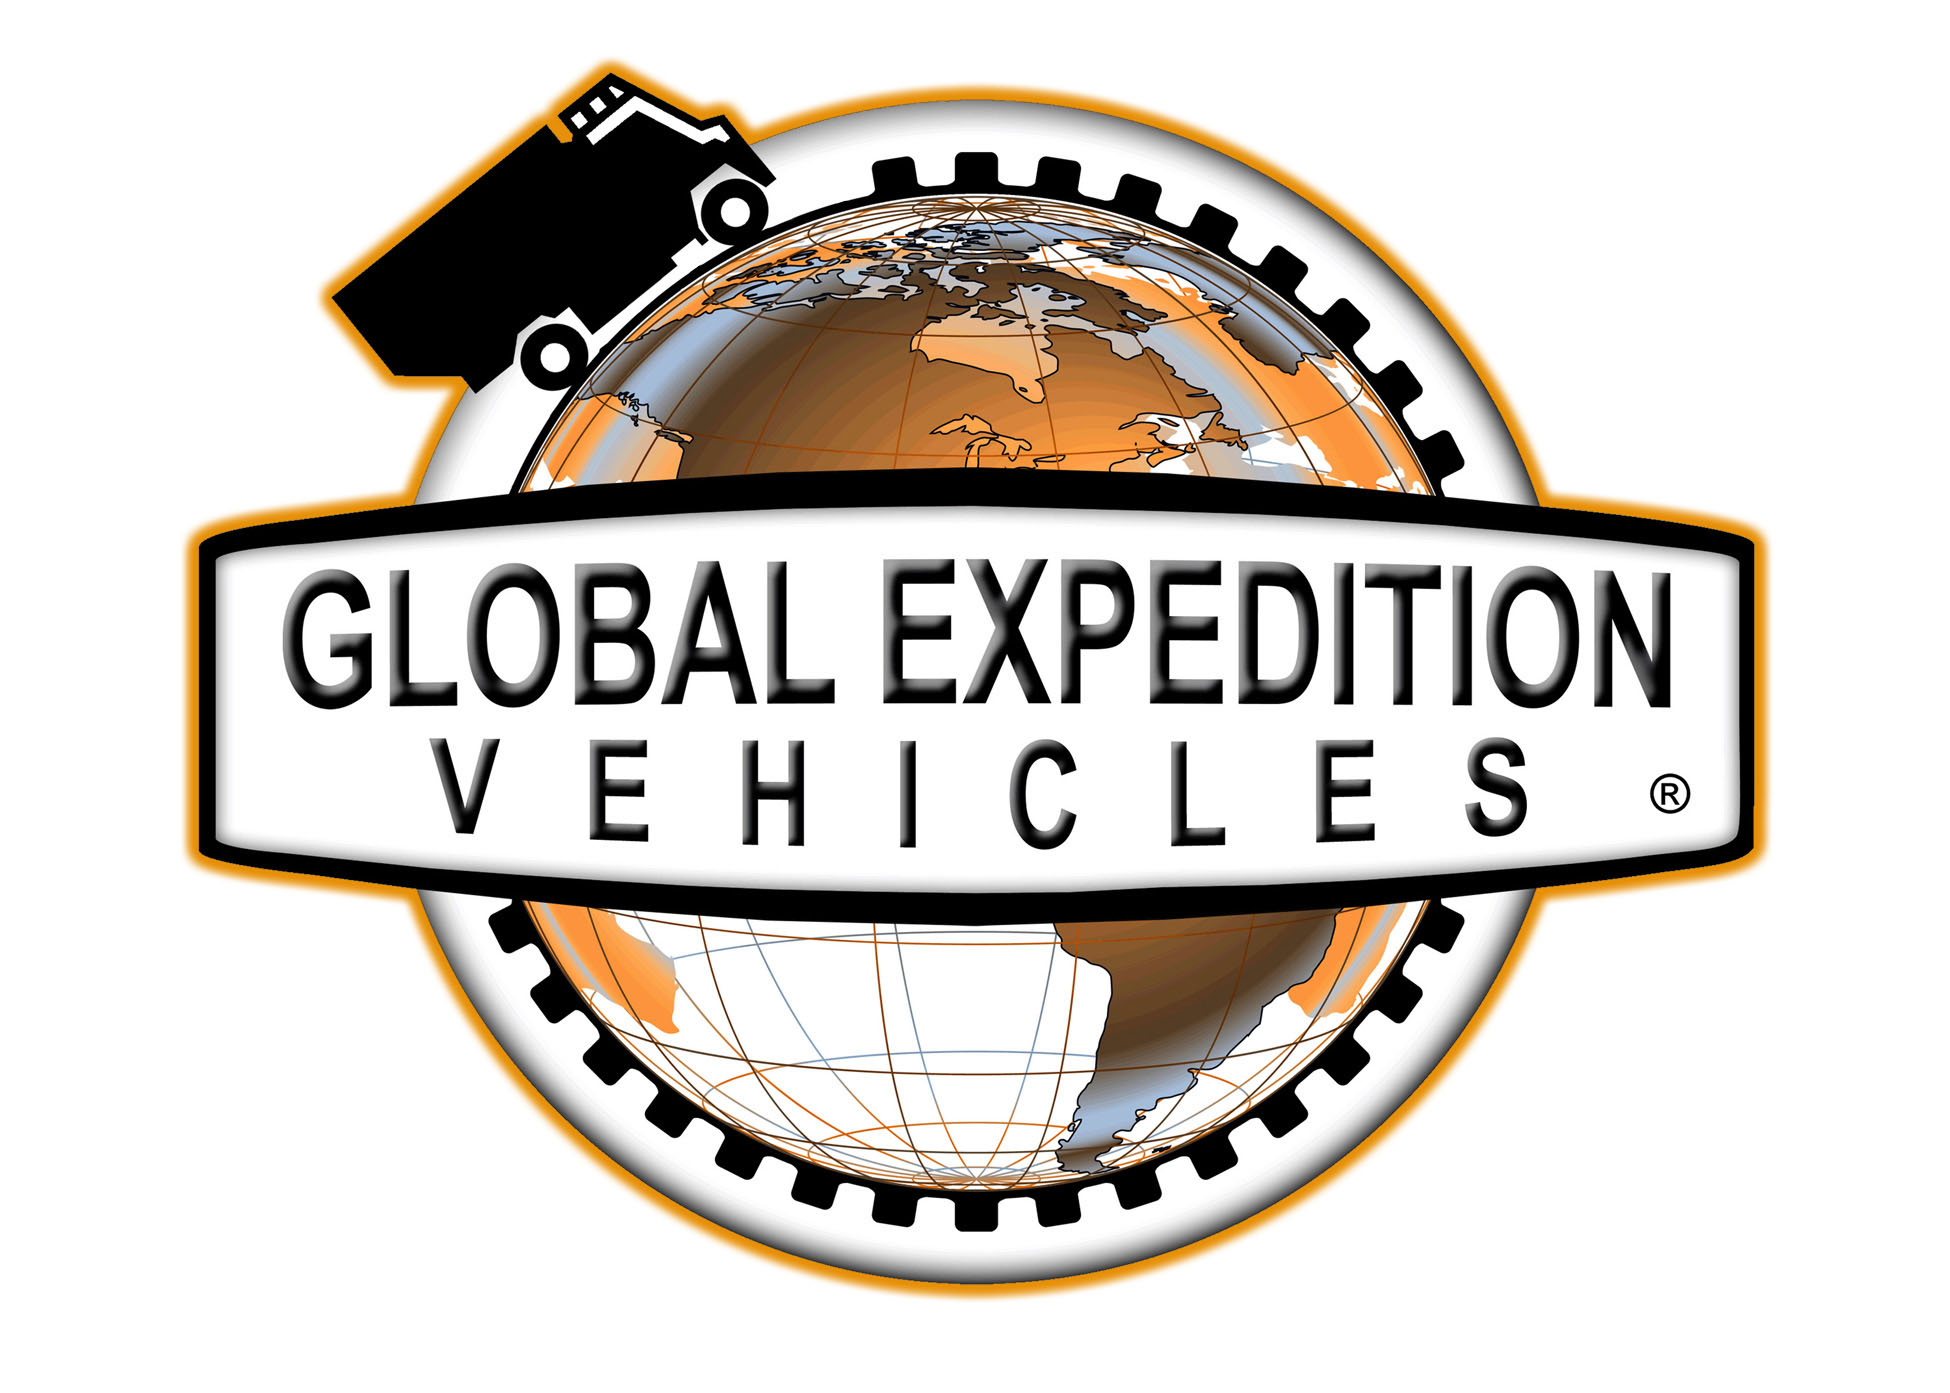 LOGO_Global Expedition Vehicles.jpg